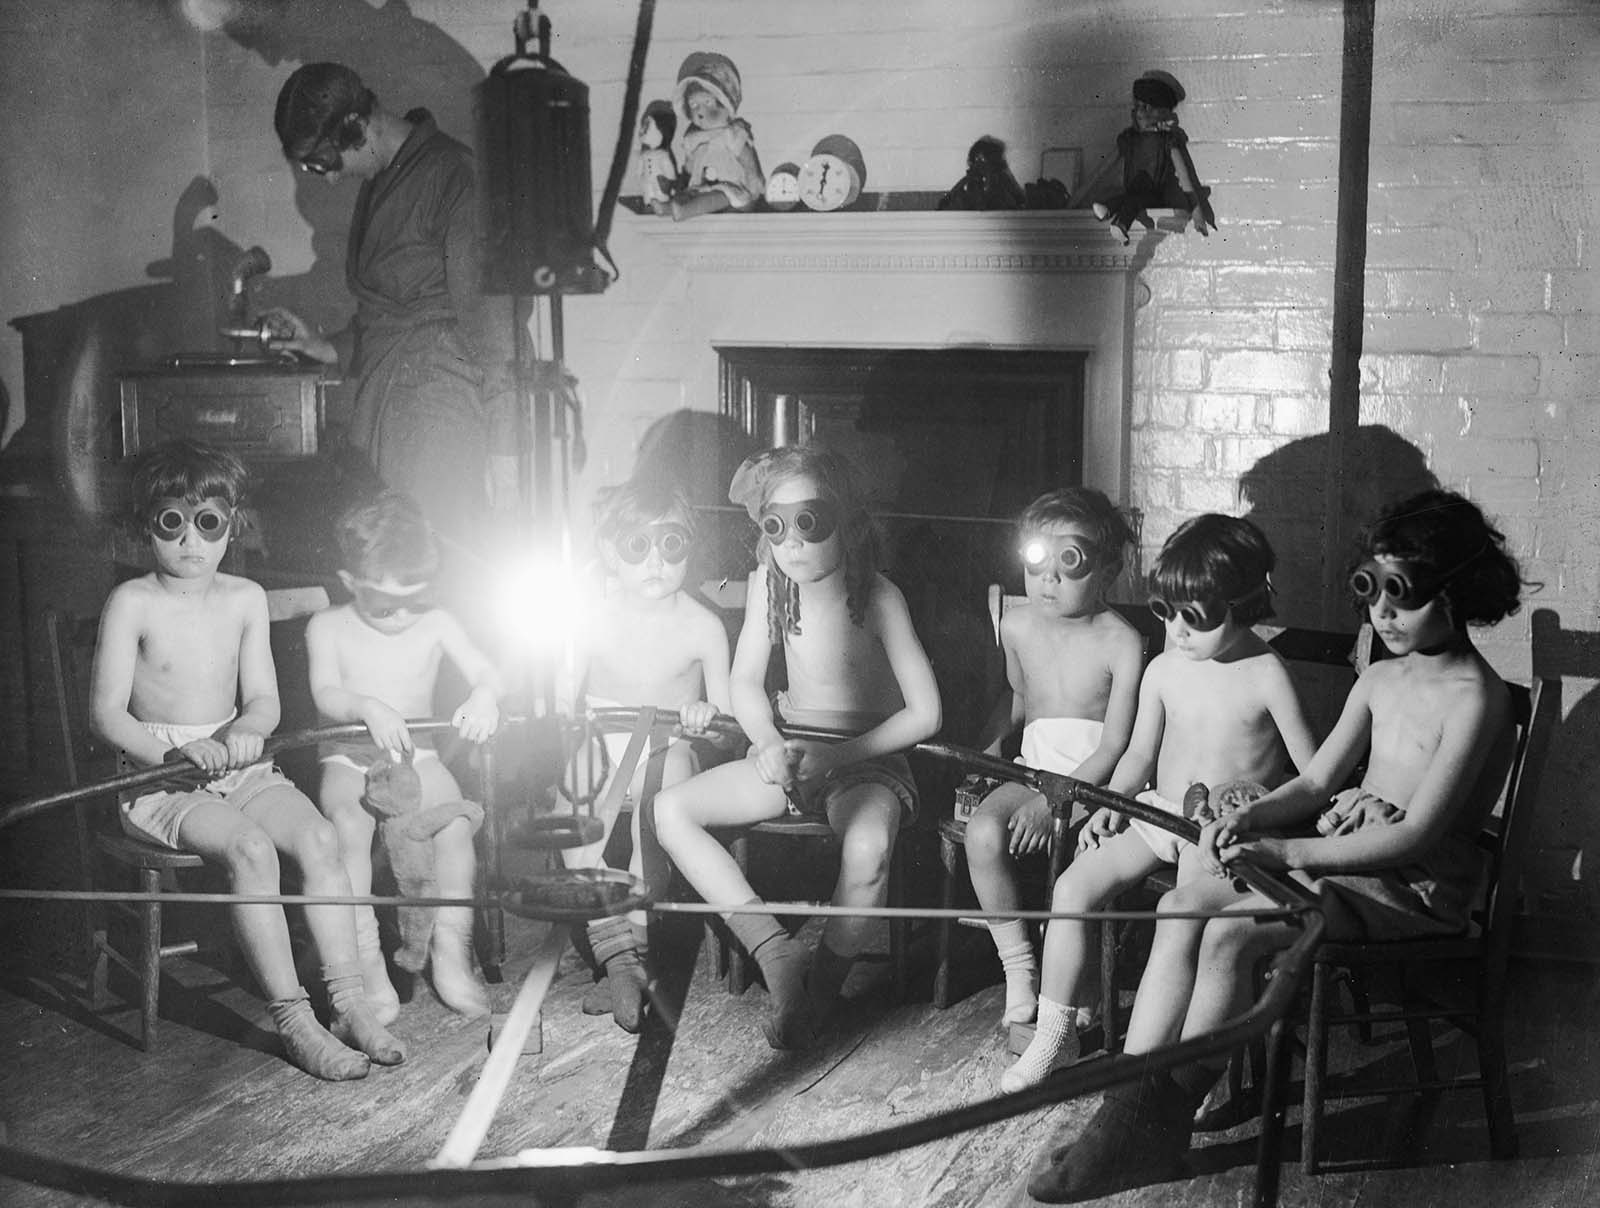 Stripped to the waist and wearing goggles, children sit round a lamp having sun ray treatment while they listen to the gramophone at the East End Mission in Commercial Rd, London. 1931.